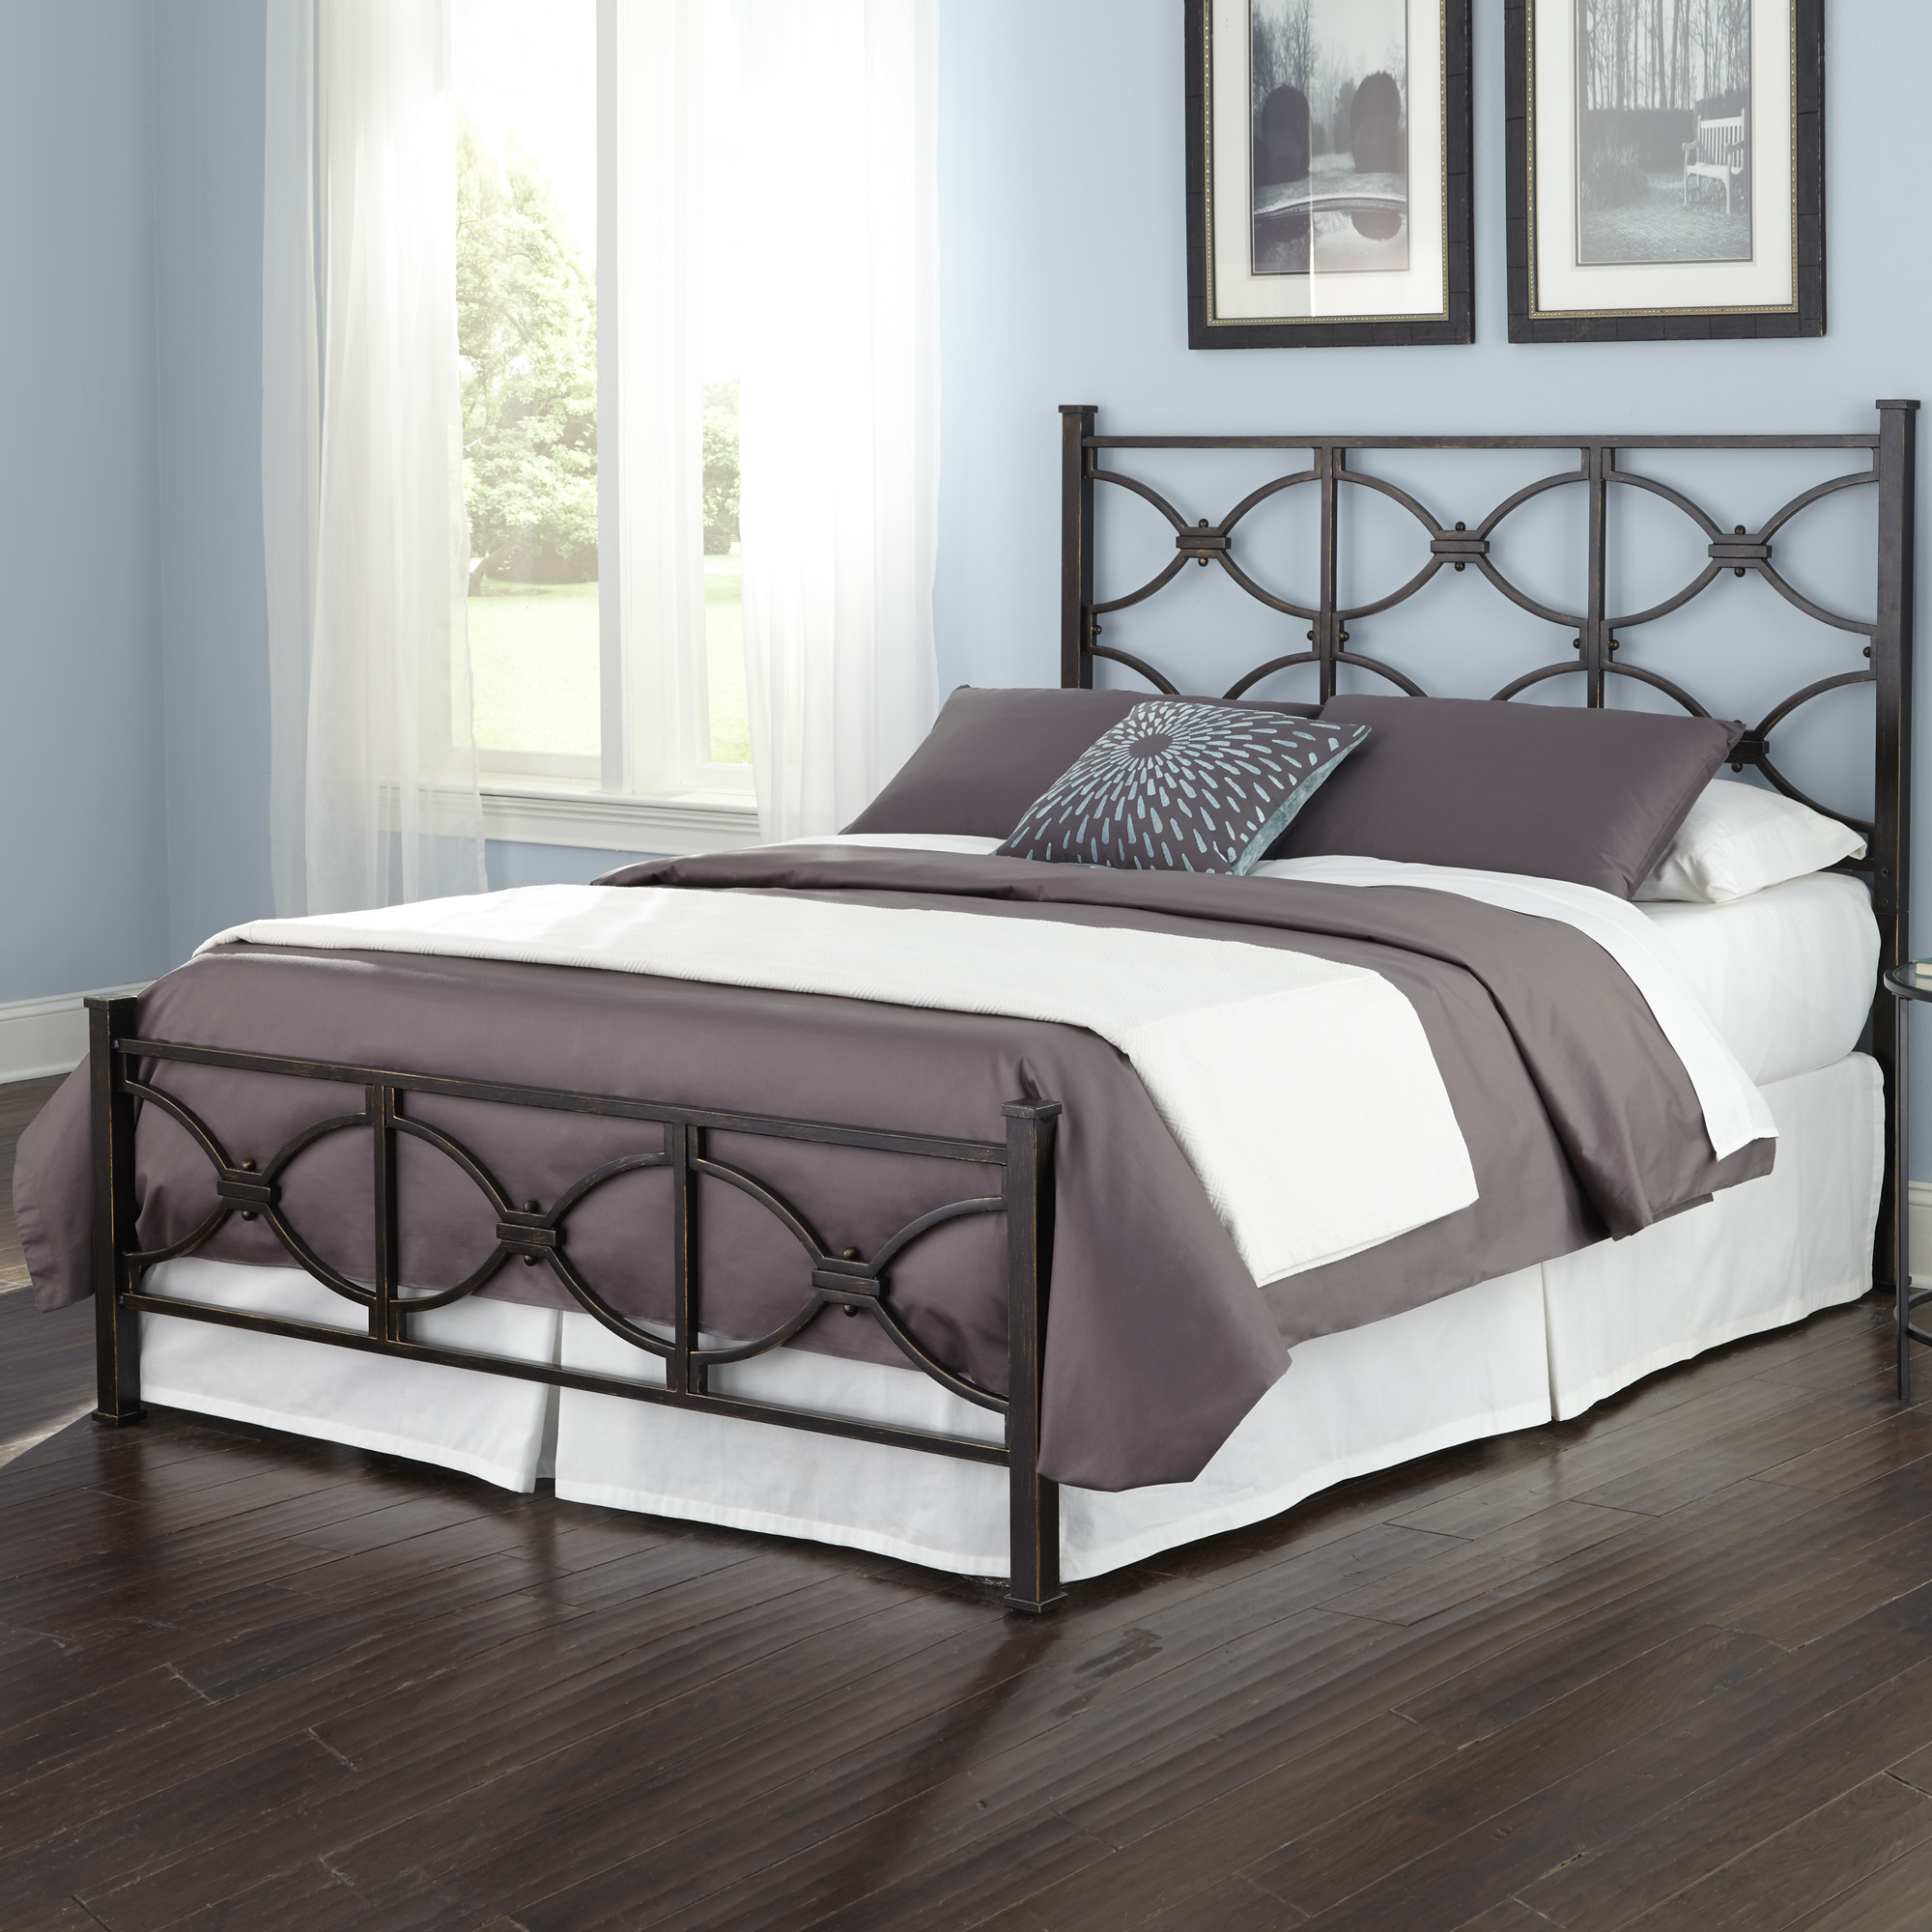 Marlo Complete Bed With Metal Panels And Squared Finial Posts, Burnished  Black Finish, California